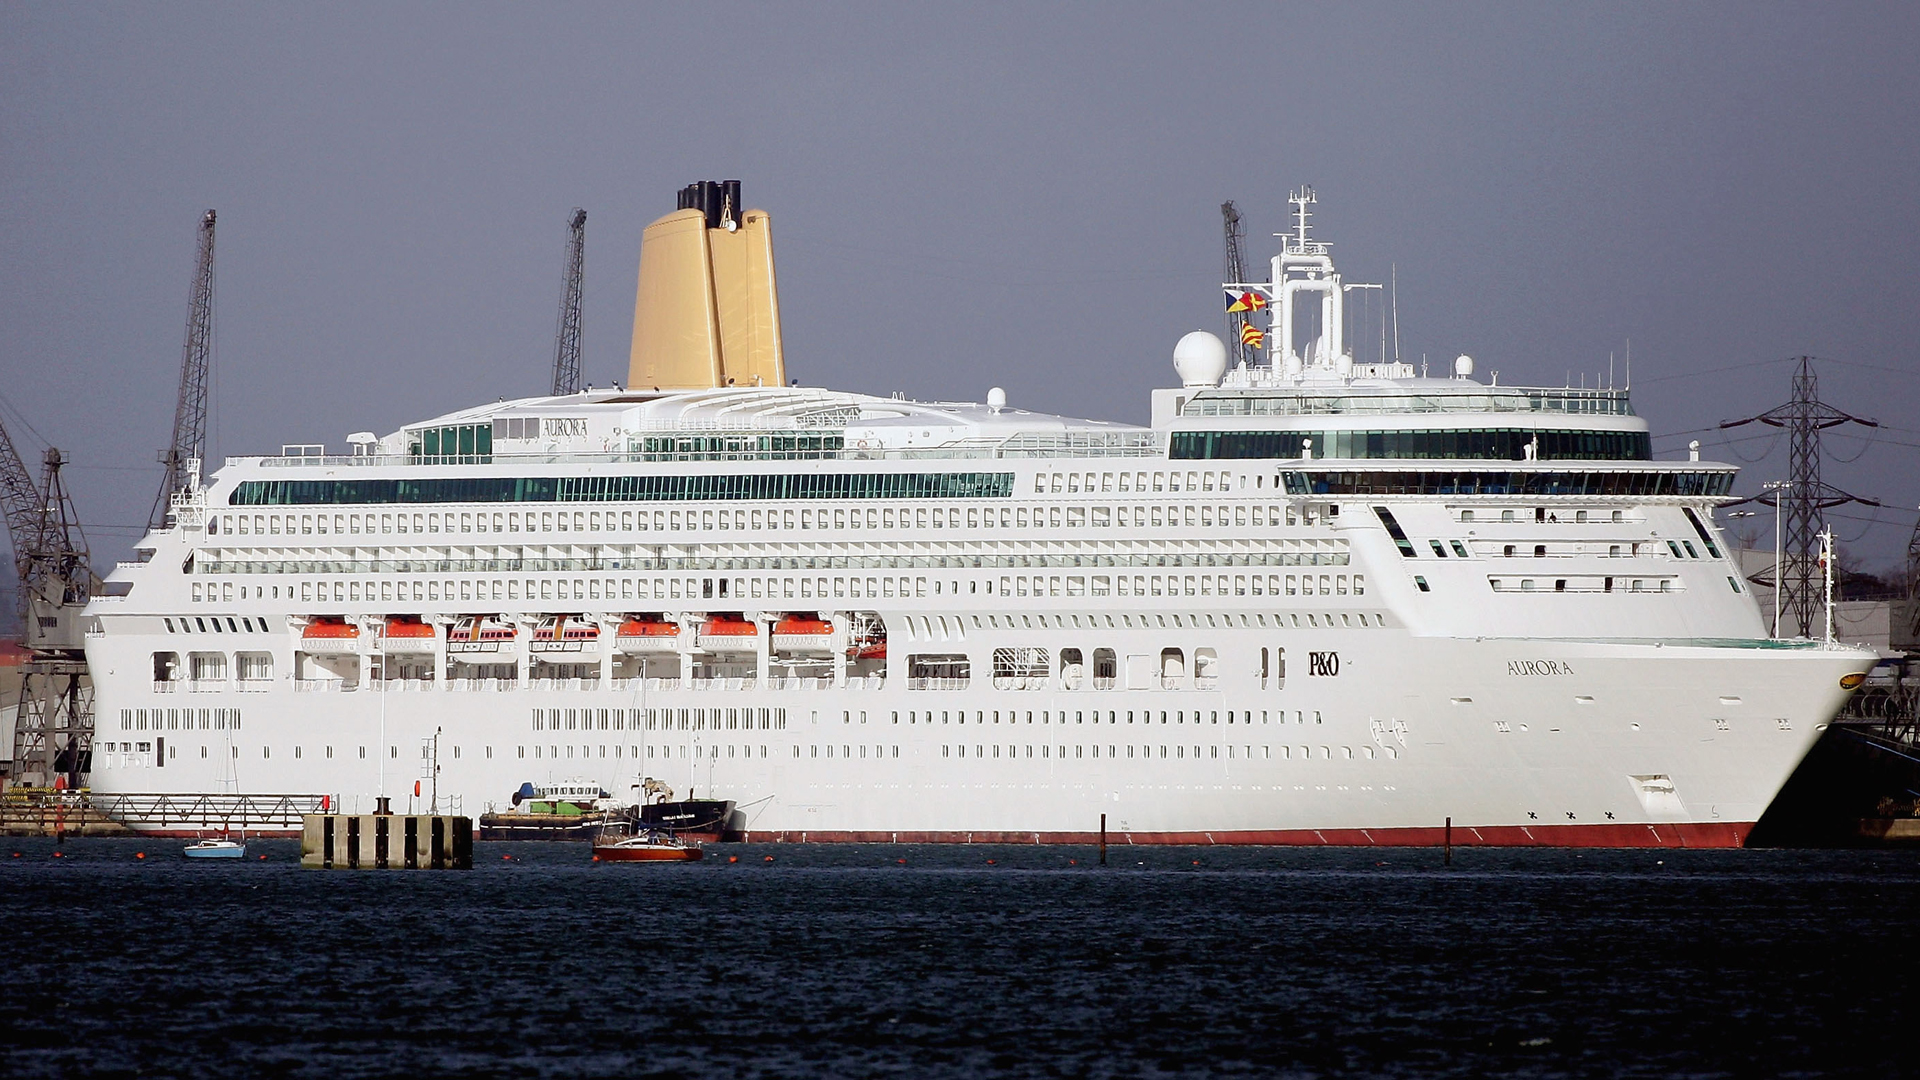 A cruise ship is seen docked in Southampton, England, in this file photo from Jan. 21, 2006. (Credit: Graeme Robertson/Getty Images)